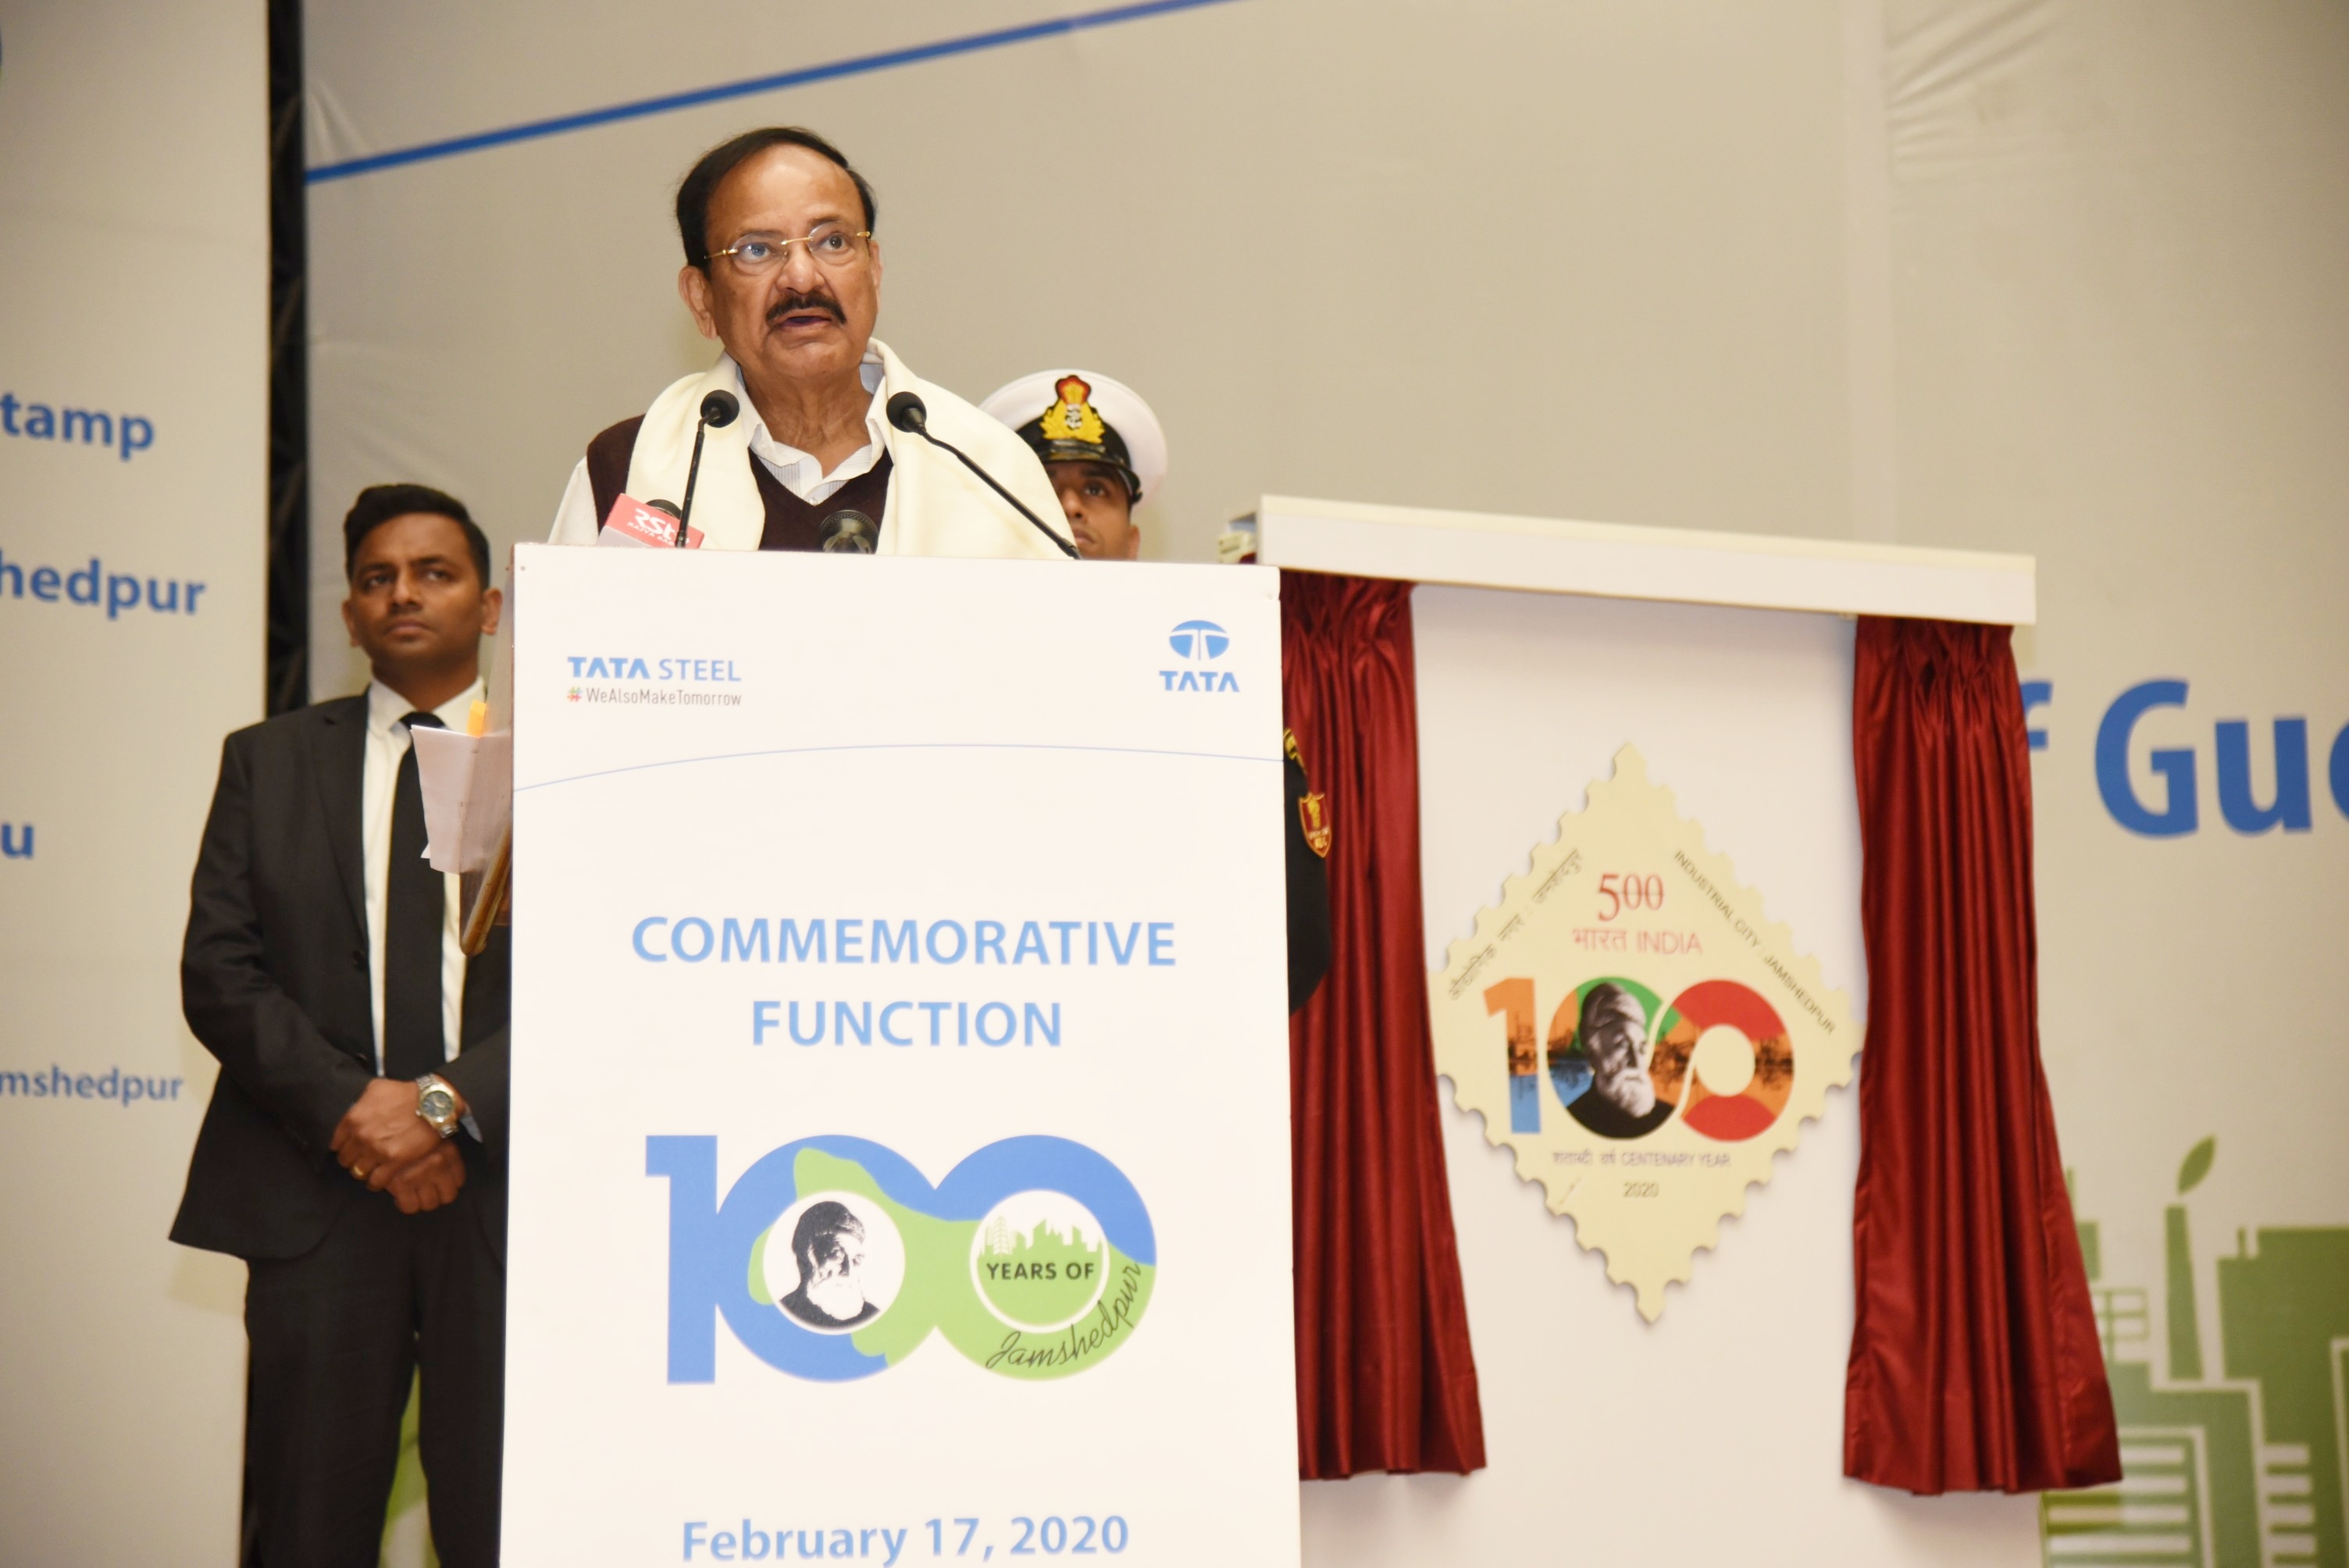 The Vice President, Shri M. Venkaiah Naidu addressing the gathering during the celebrations of the 100 years of Jamshedpur city, in Jamshedpur, on 17 February 2020.